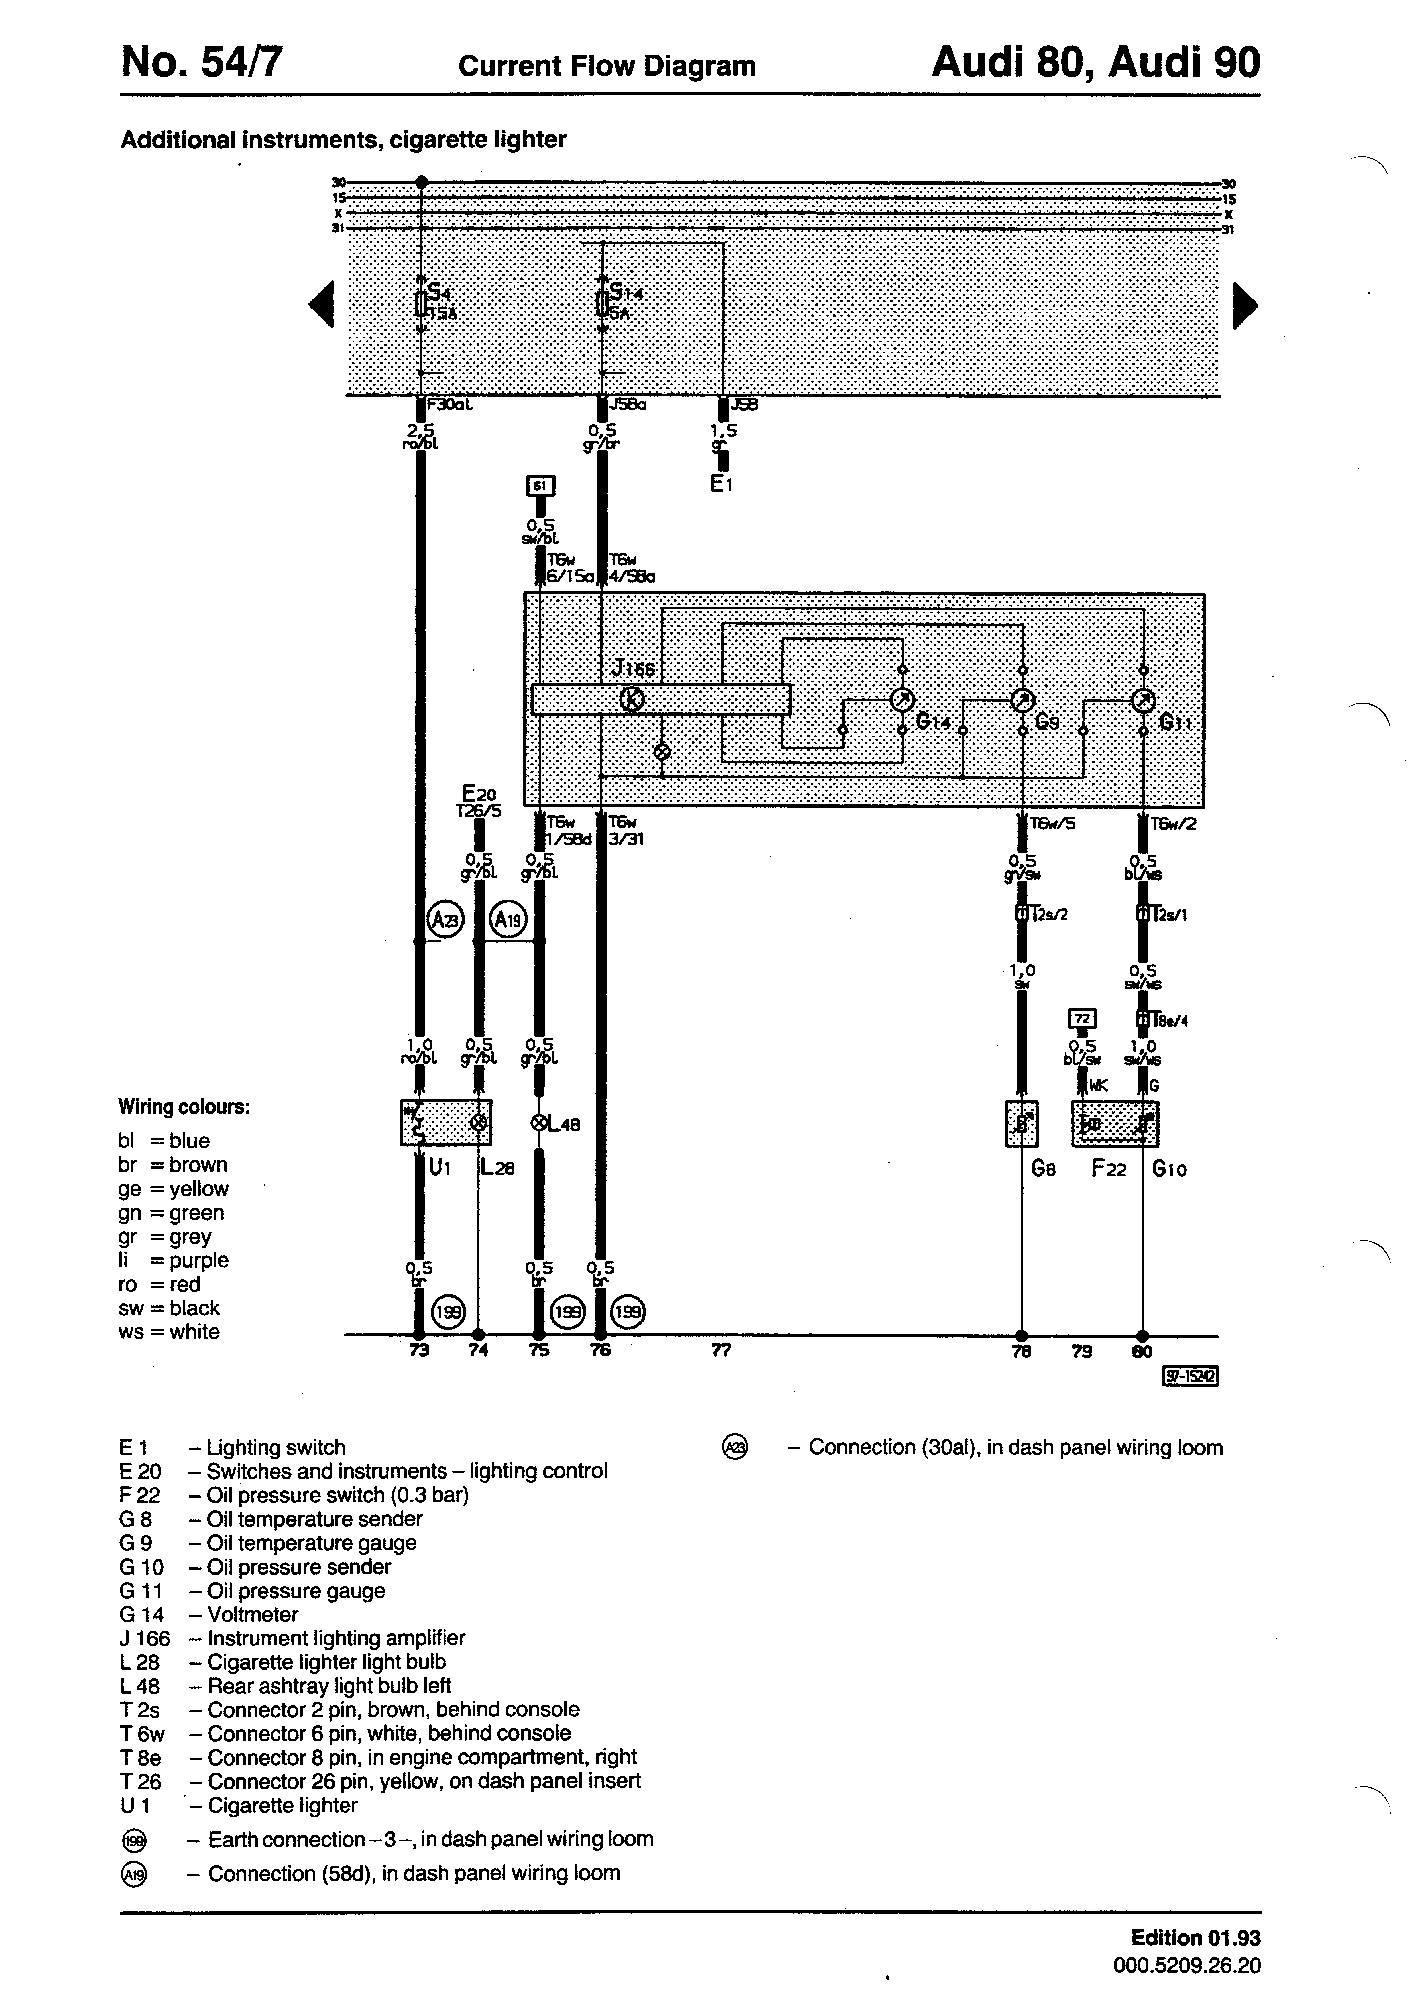 Audi 90 B3 Wiring Diagram Schematics Diagrams A4 Component Lookup Rh S2 Co Uk 1998 Fuse Box Location